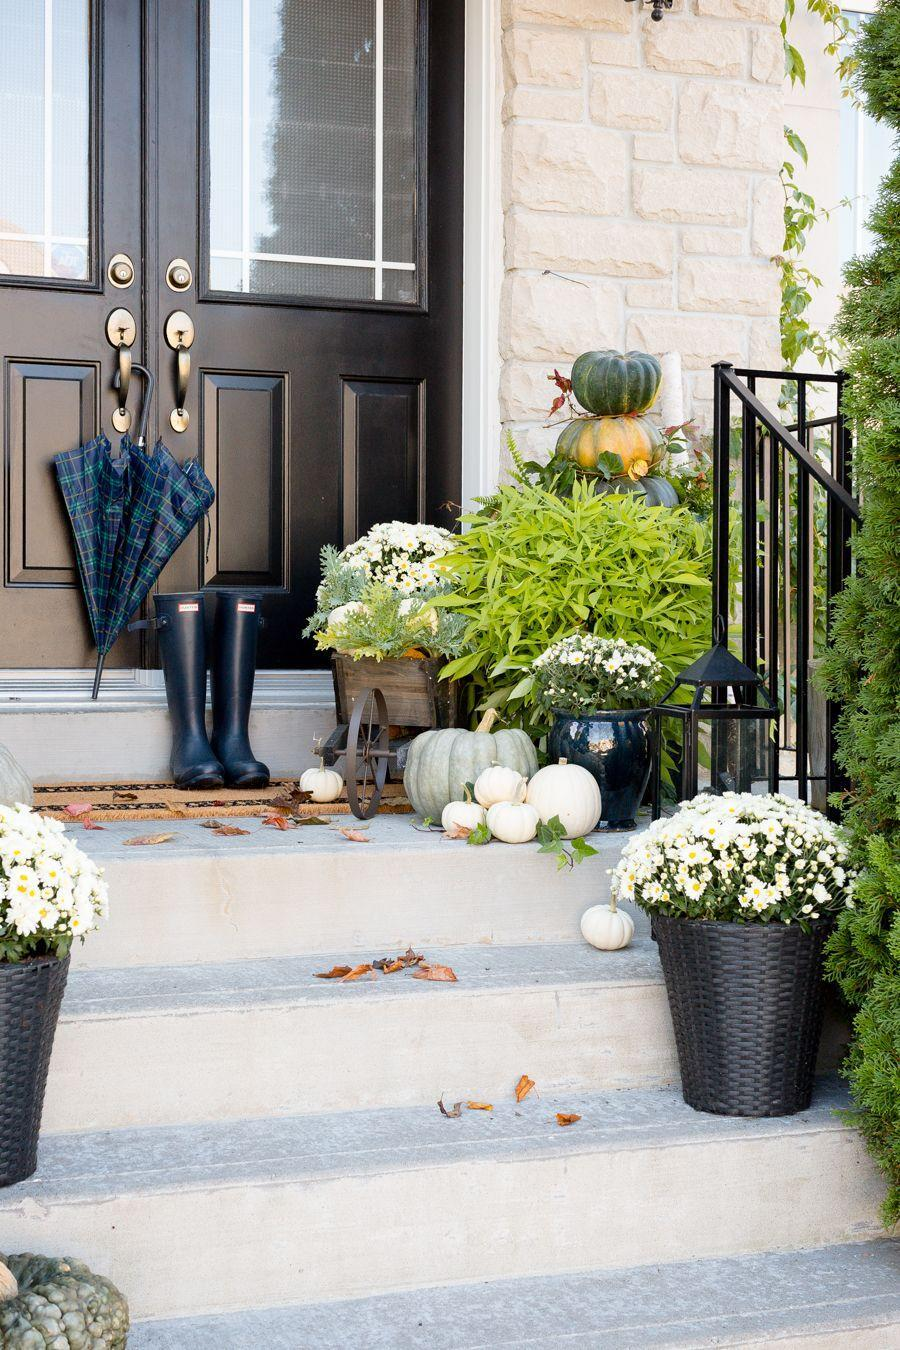 """<p>For a look that will last from Labor Day through Thanksgiving, steer clear of the expected orange color palette. Instead, look to sophisticated neutrals, like white, green, and even a little bit of black. </p><p><a class=""""link rapid-noclick-resp"""" href=""""https://www.craftberrybush.com/2017/09/fall-front-porch-3.html"""" rel=""""nofollow noopener"""" target=""""_blank"""" data-ylk=""""slk:GET THE TUTORIAL"""">GET THE TUTORIAL</a></p>"""